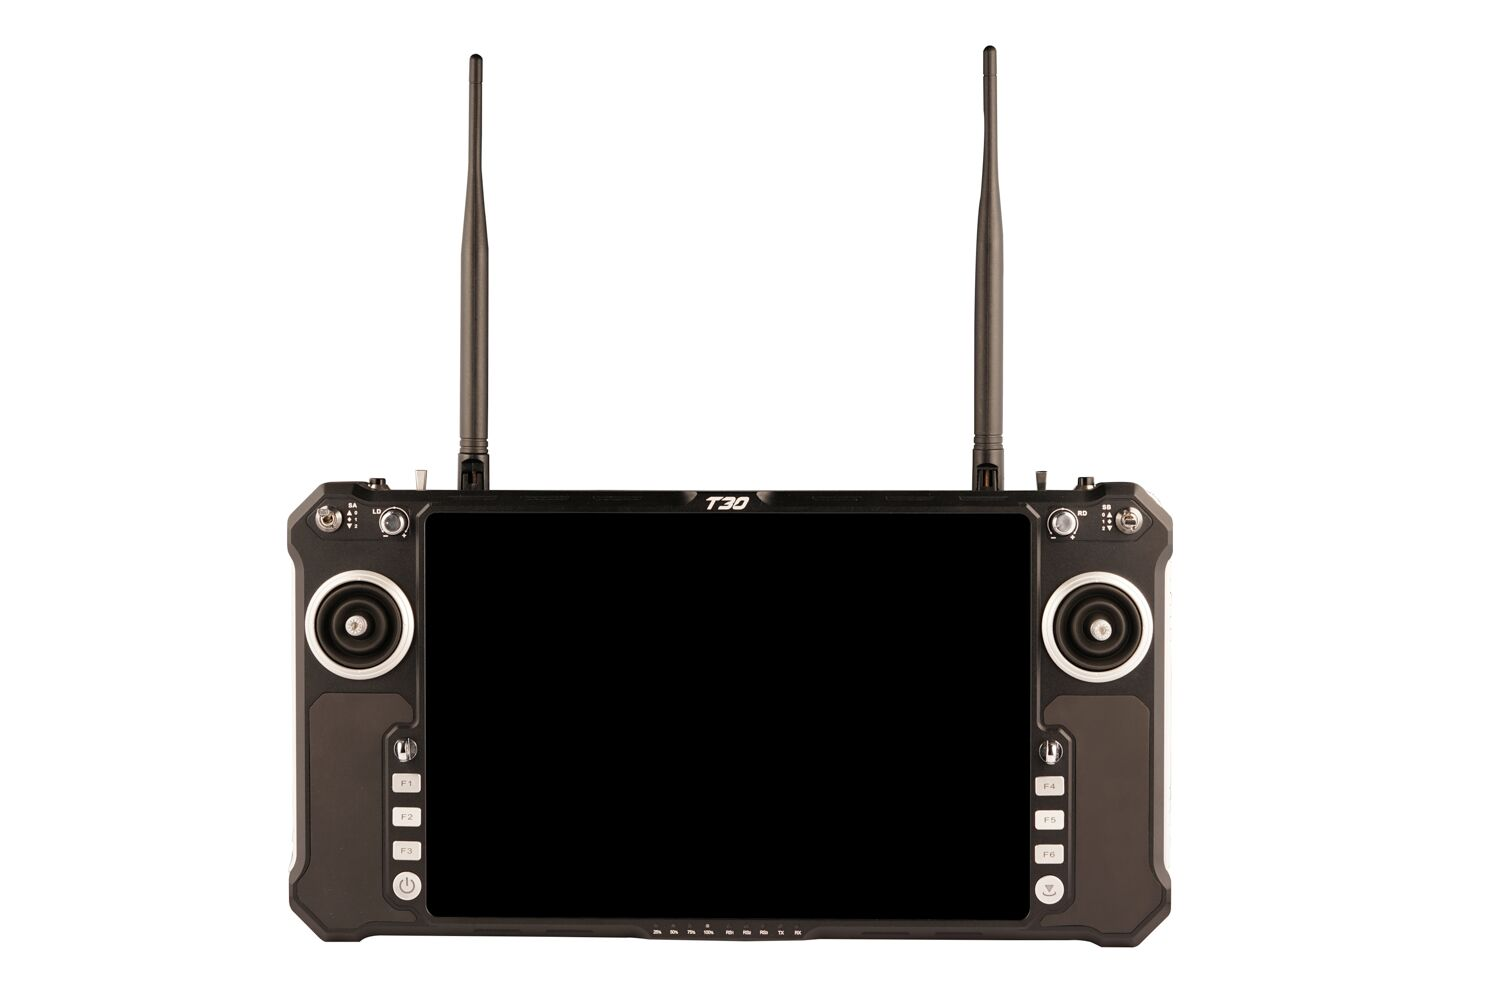 T30 All-in-one Handheld 22CH FPV Portable Ground Station 10.1inch Touch Screen For UAV RC Drone image